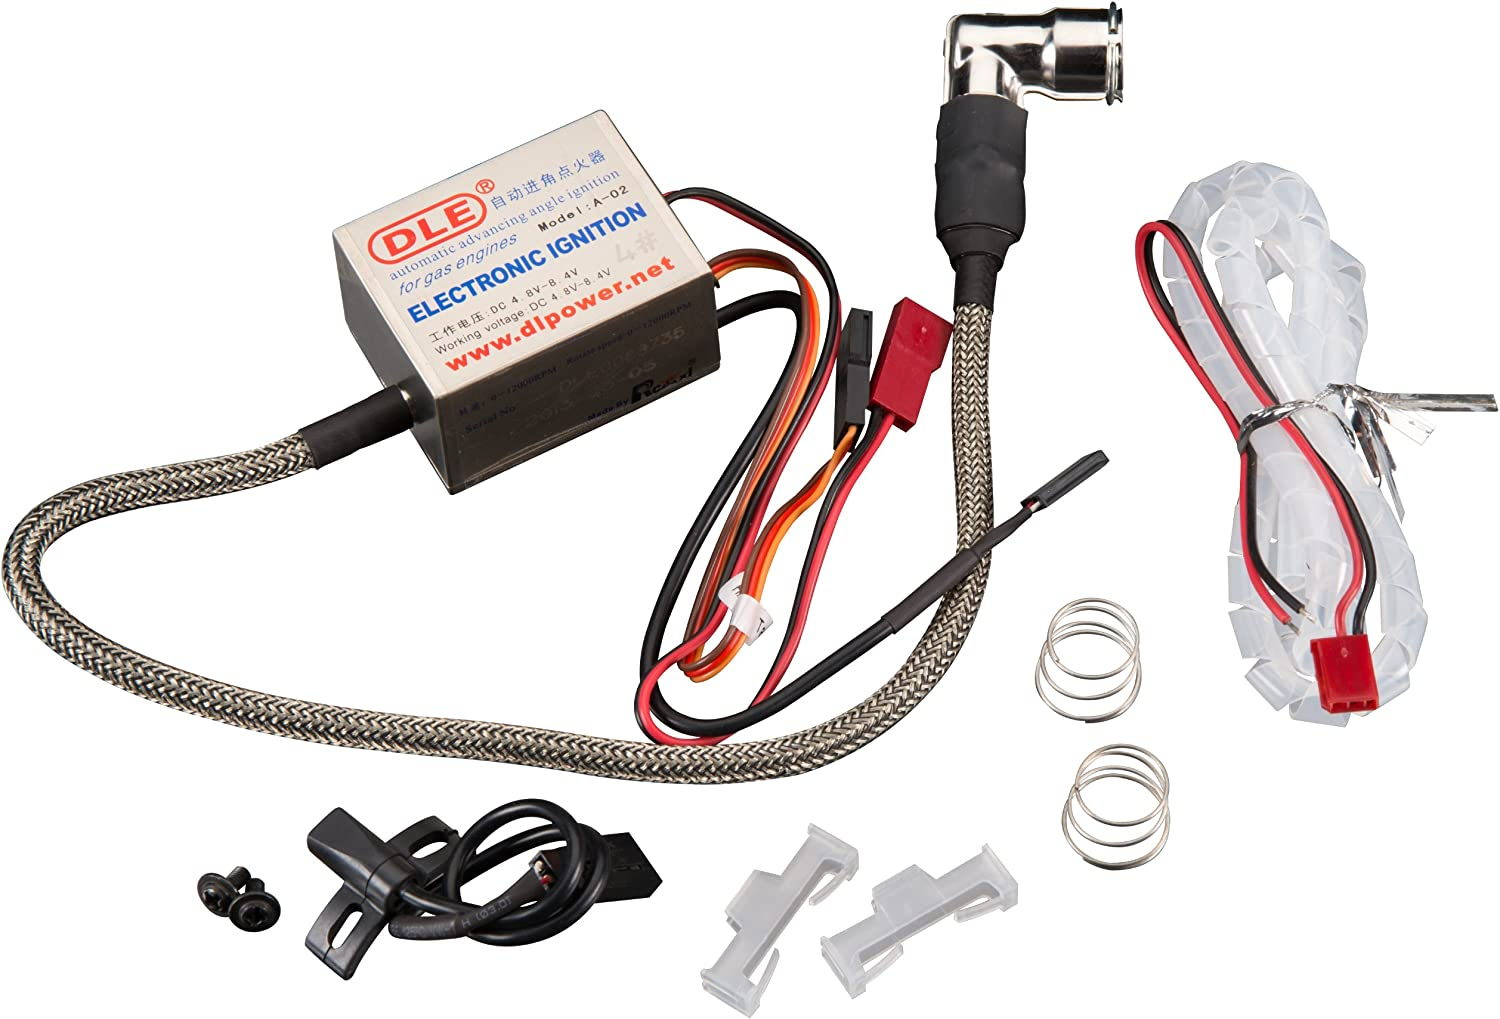 DLE Engines 20-F28#4 DLE20 Module service Our shop OFFers the best service Electronic Ignition